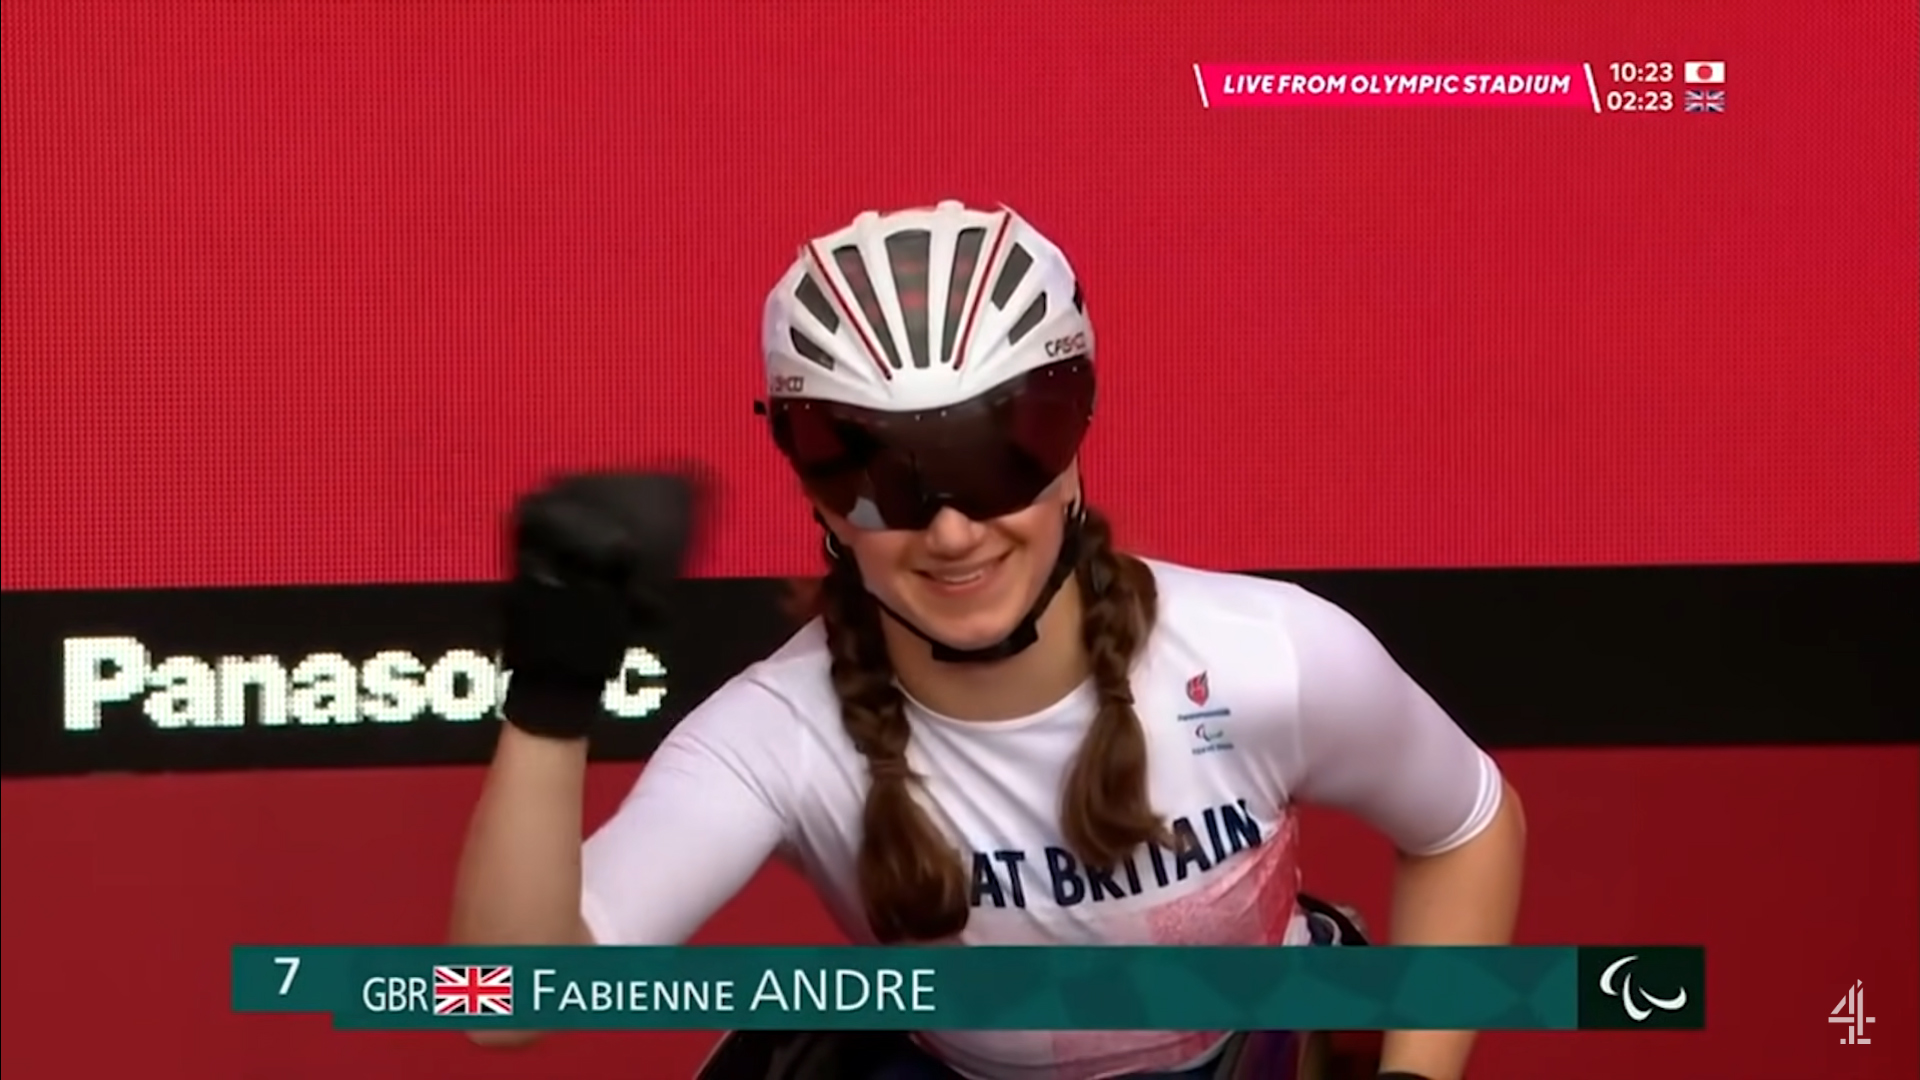 Best of luck to Get Kids Going! supported athlete Fabienne Andre for her first Paralympic games